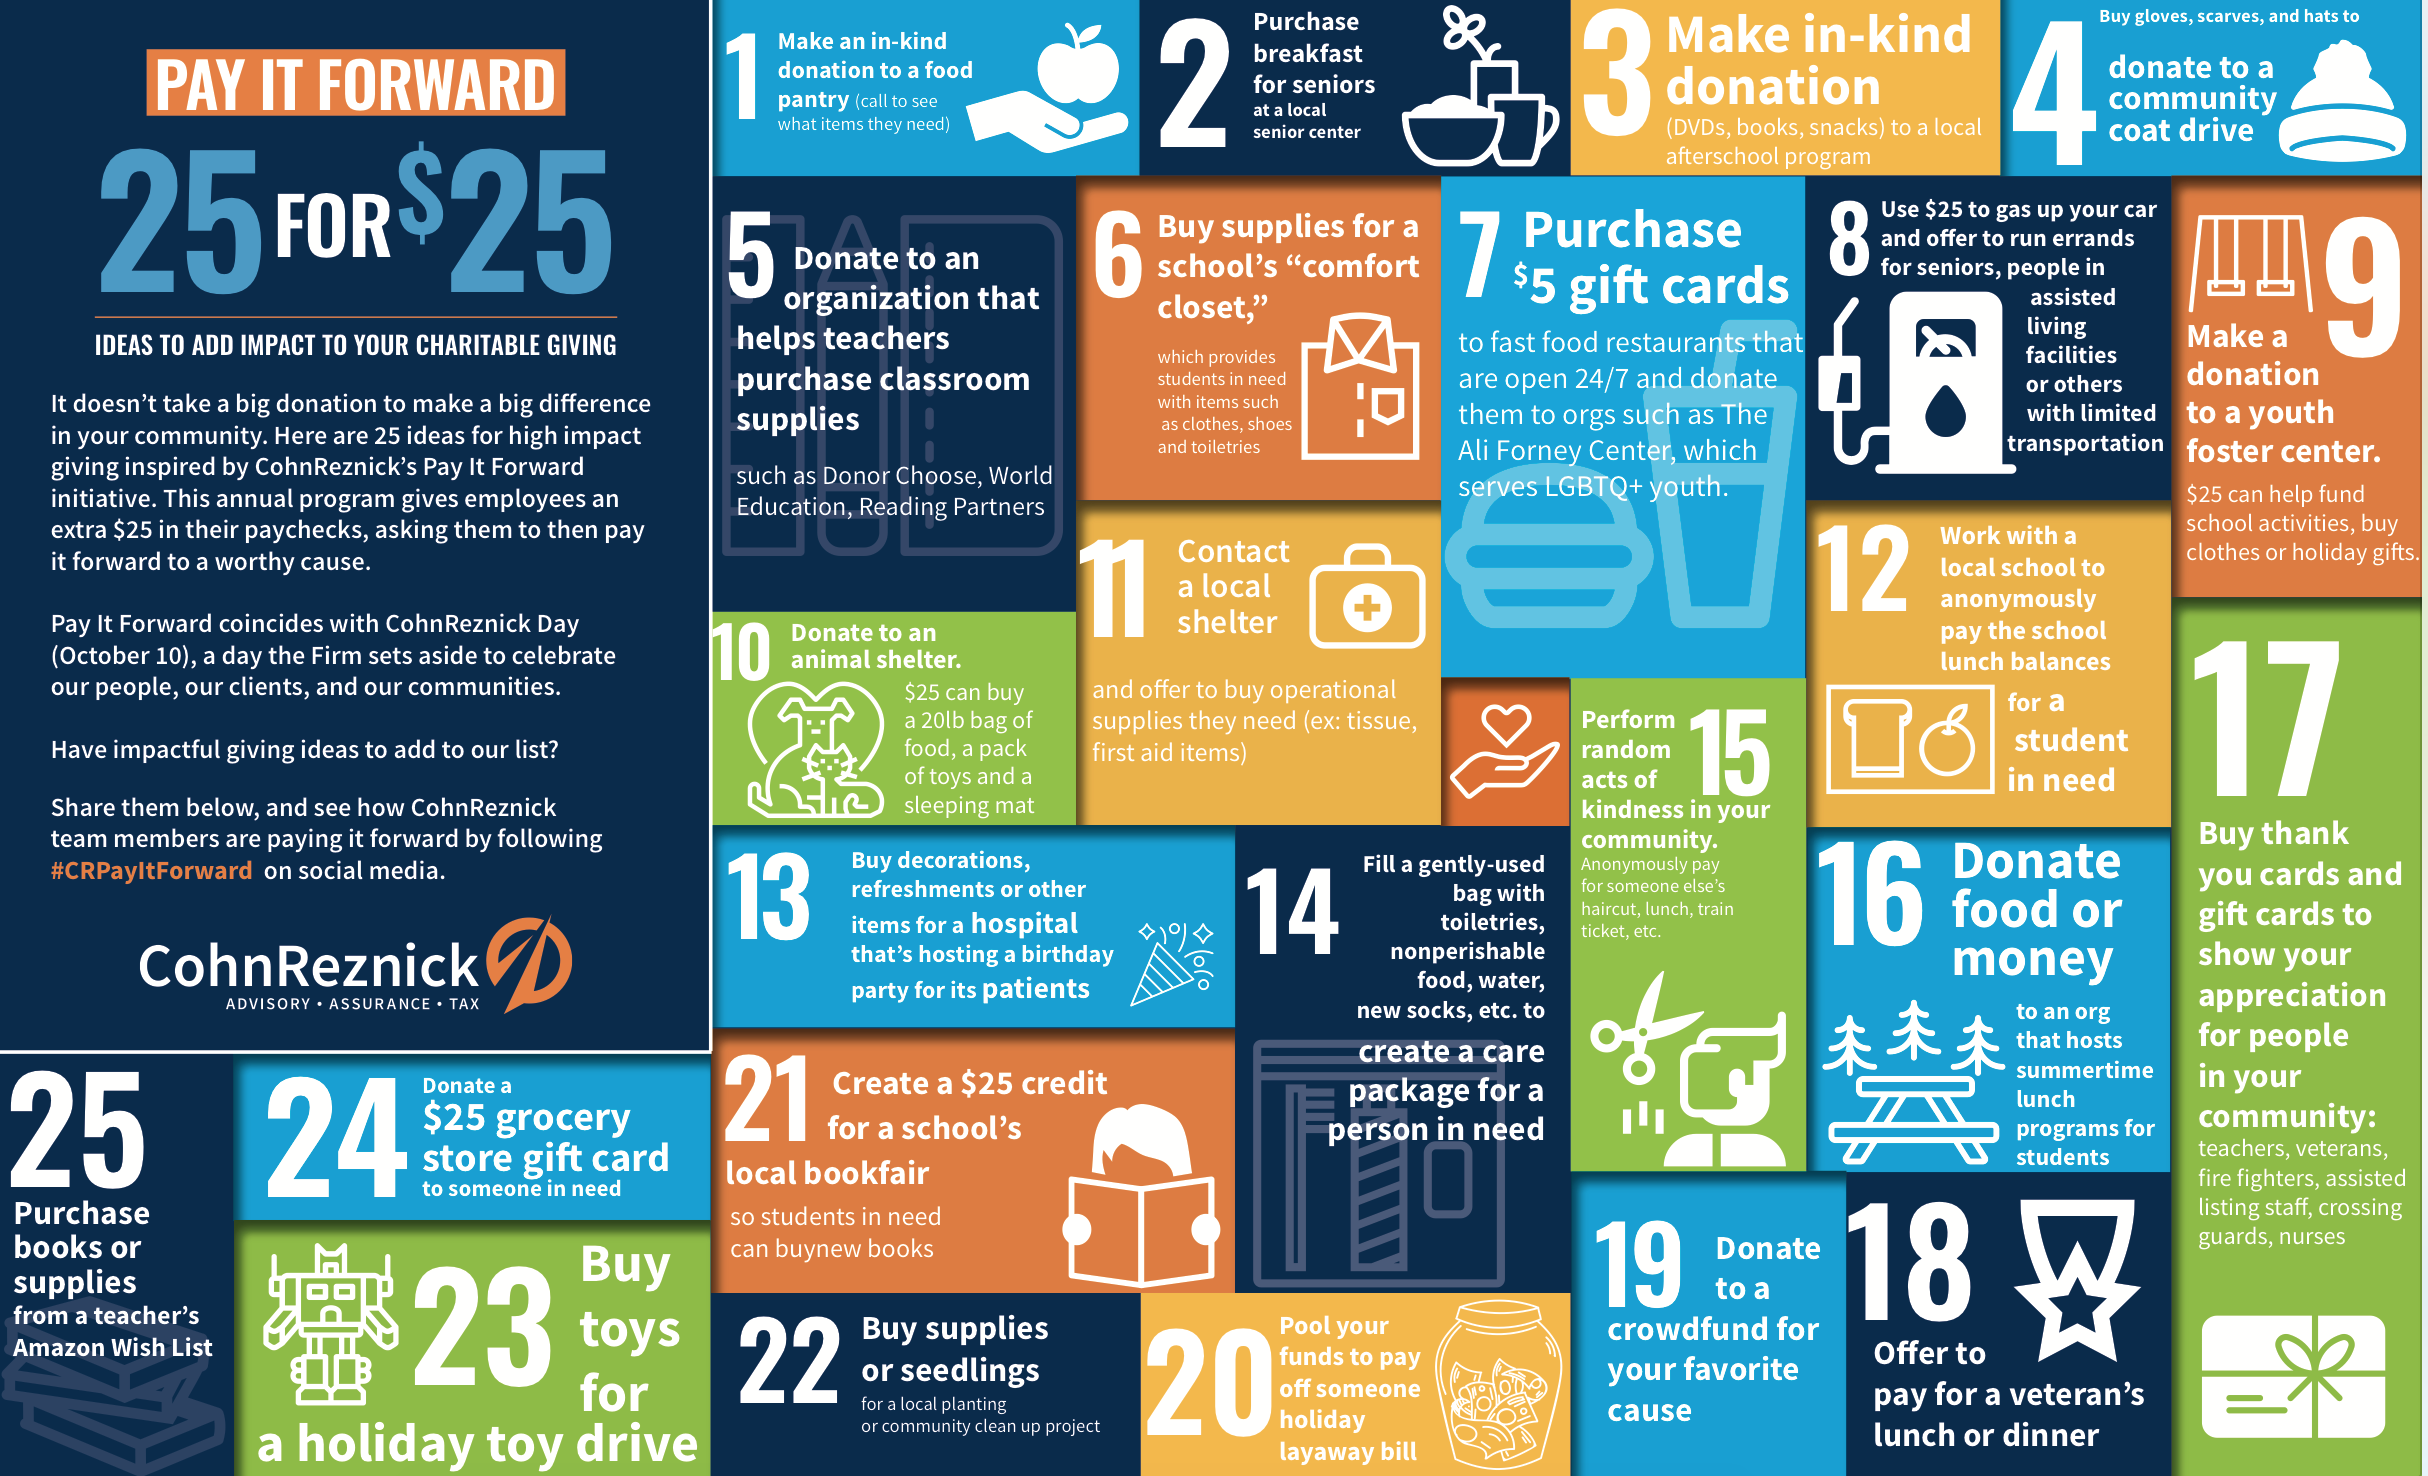 25 Ways to Pay It Forward - Info-Graphic Version 1